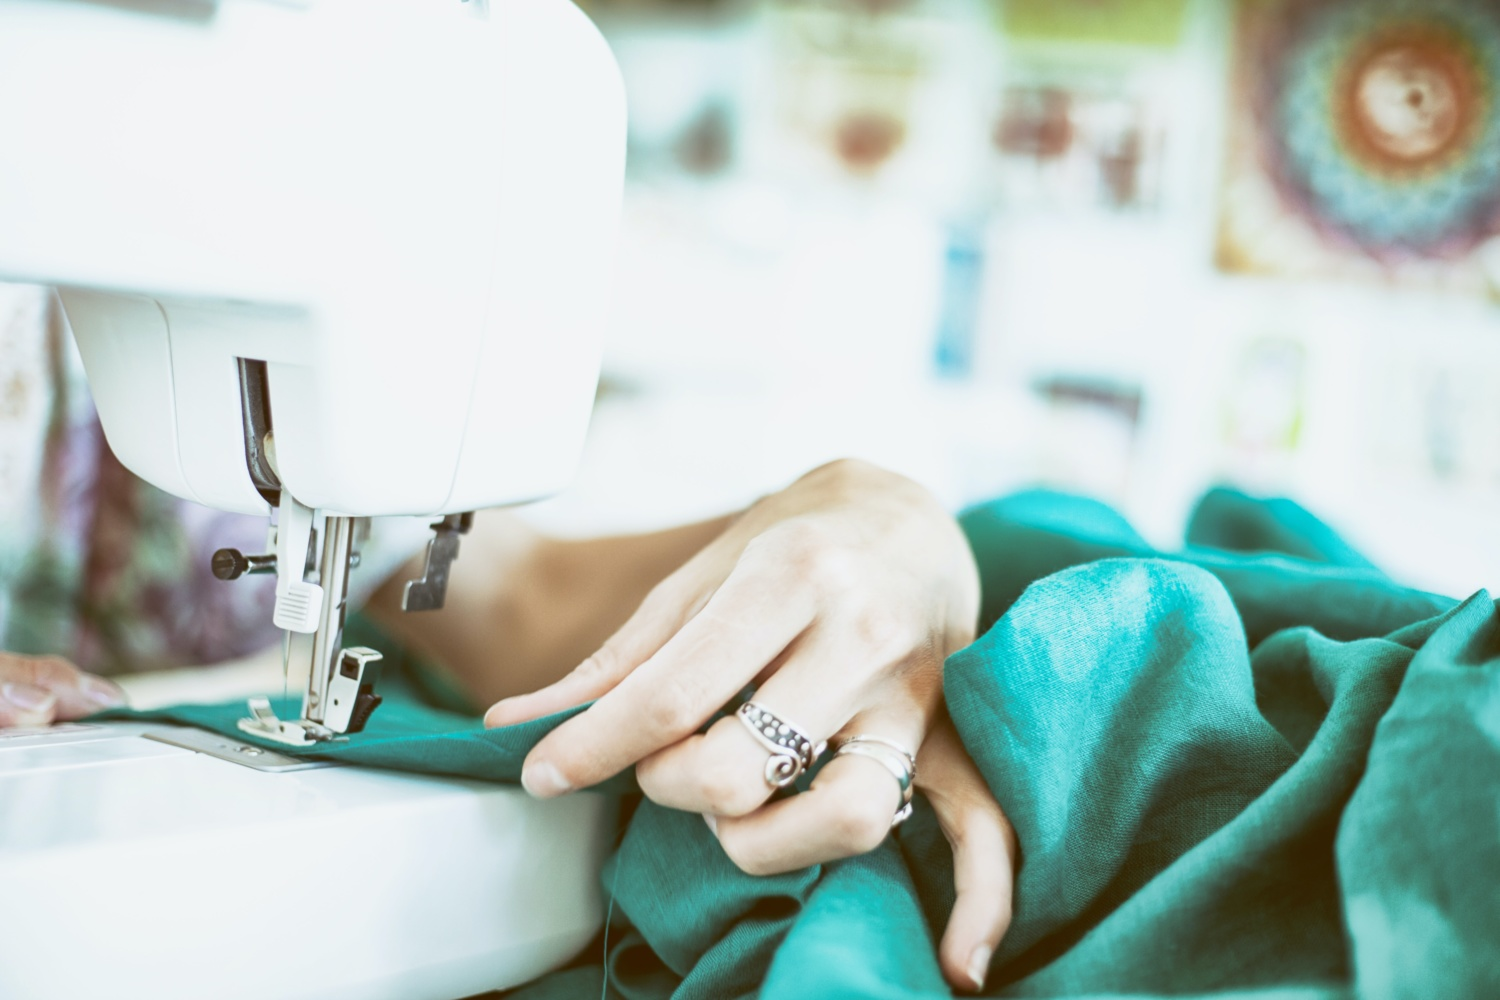 A close up shot of a persons hands sewing at a white sewing machine